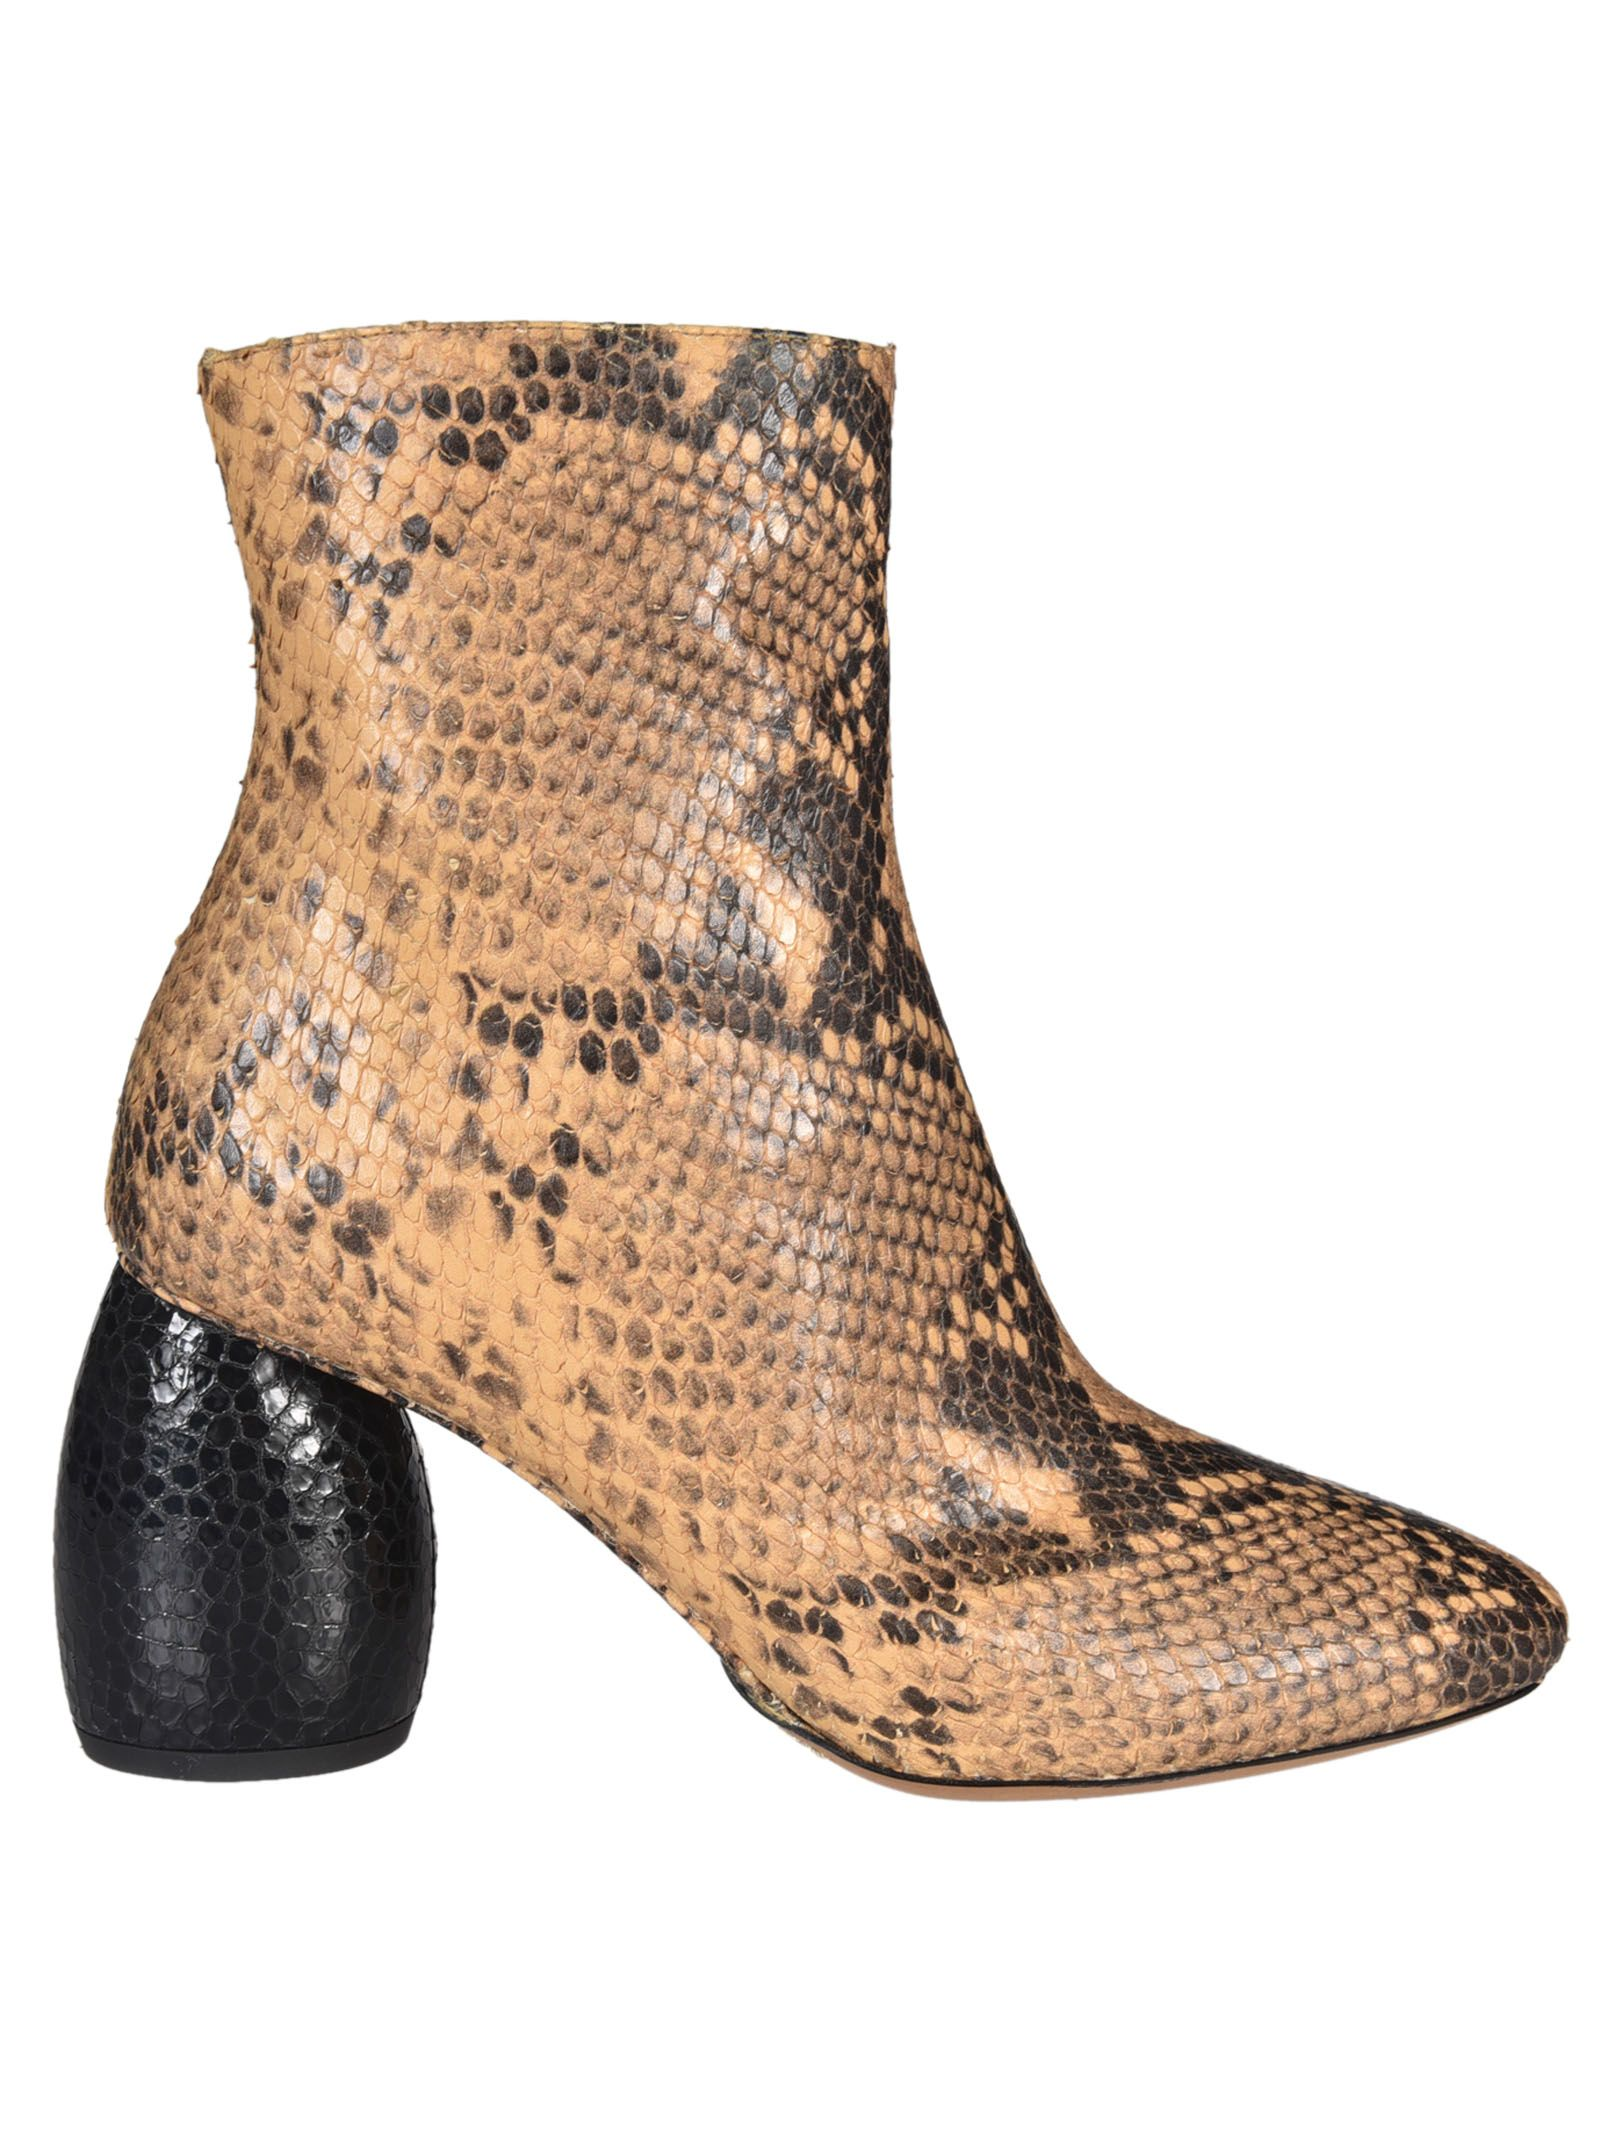 Dries Van Noten Mirrored Heel Ankle Snake Boots - Dries Van Noten - Philosophy